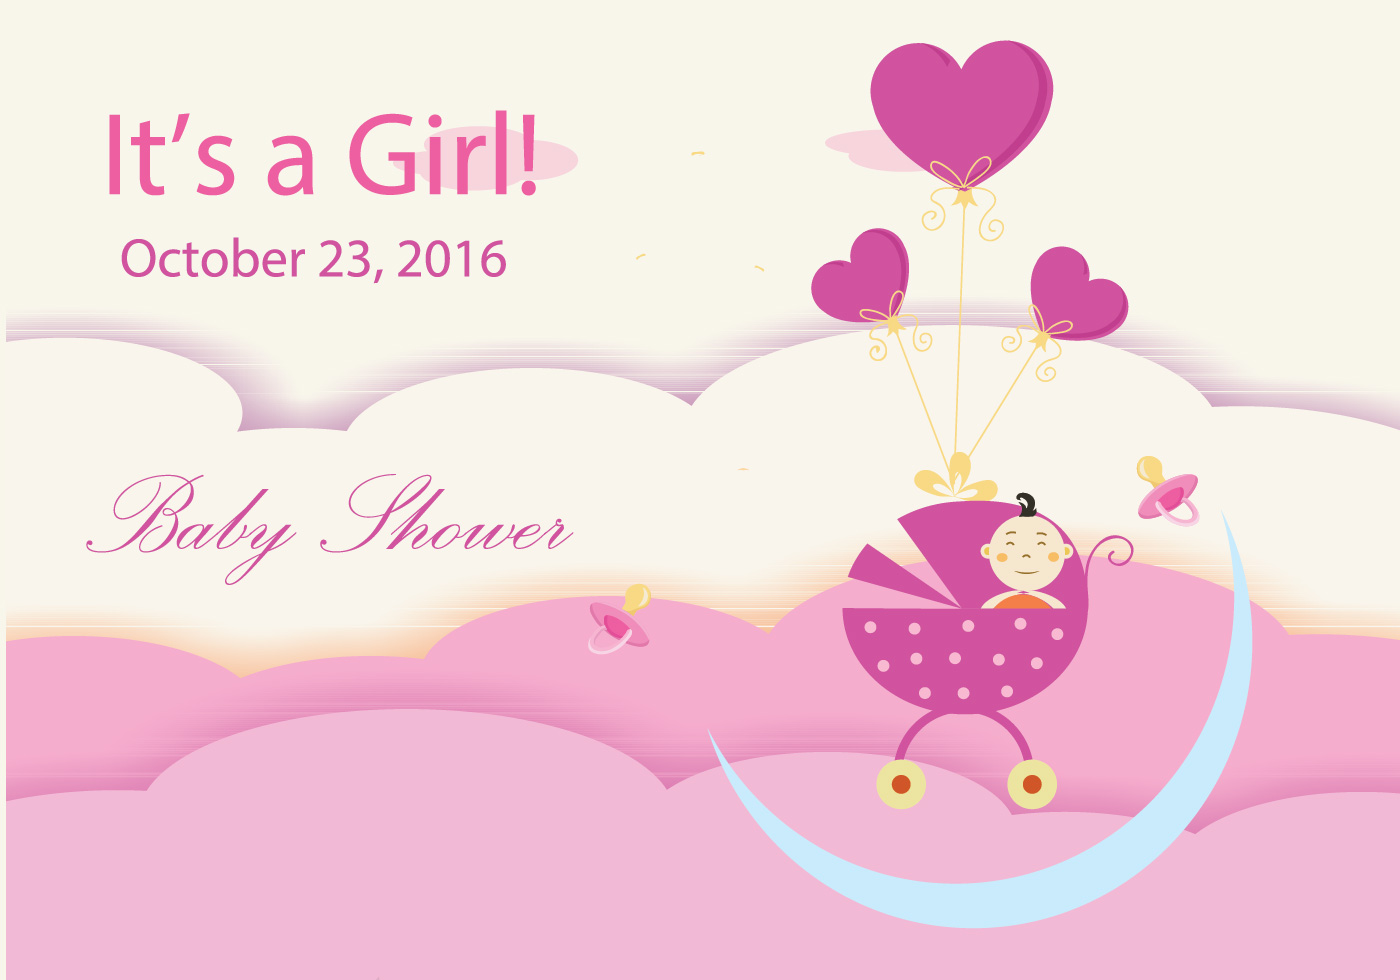 Baby Shower Design Download Free Vector Art Stock